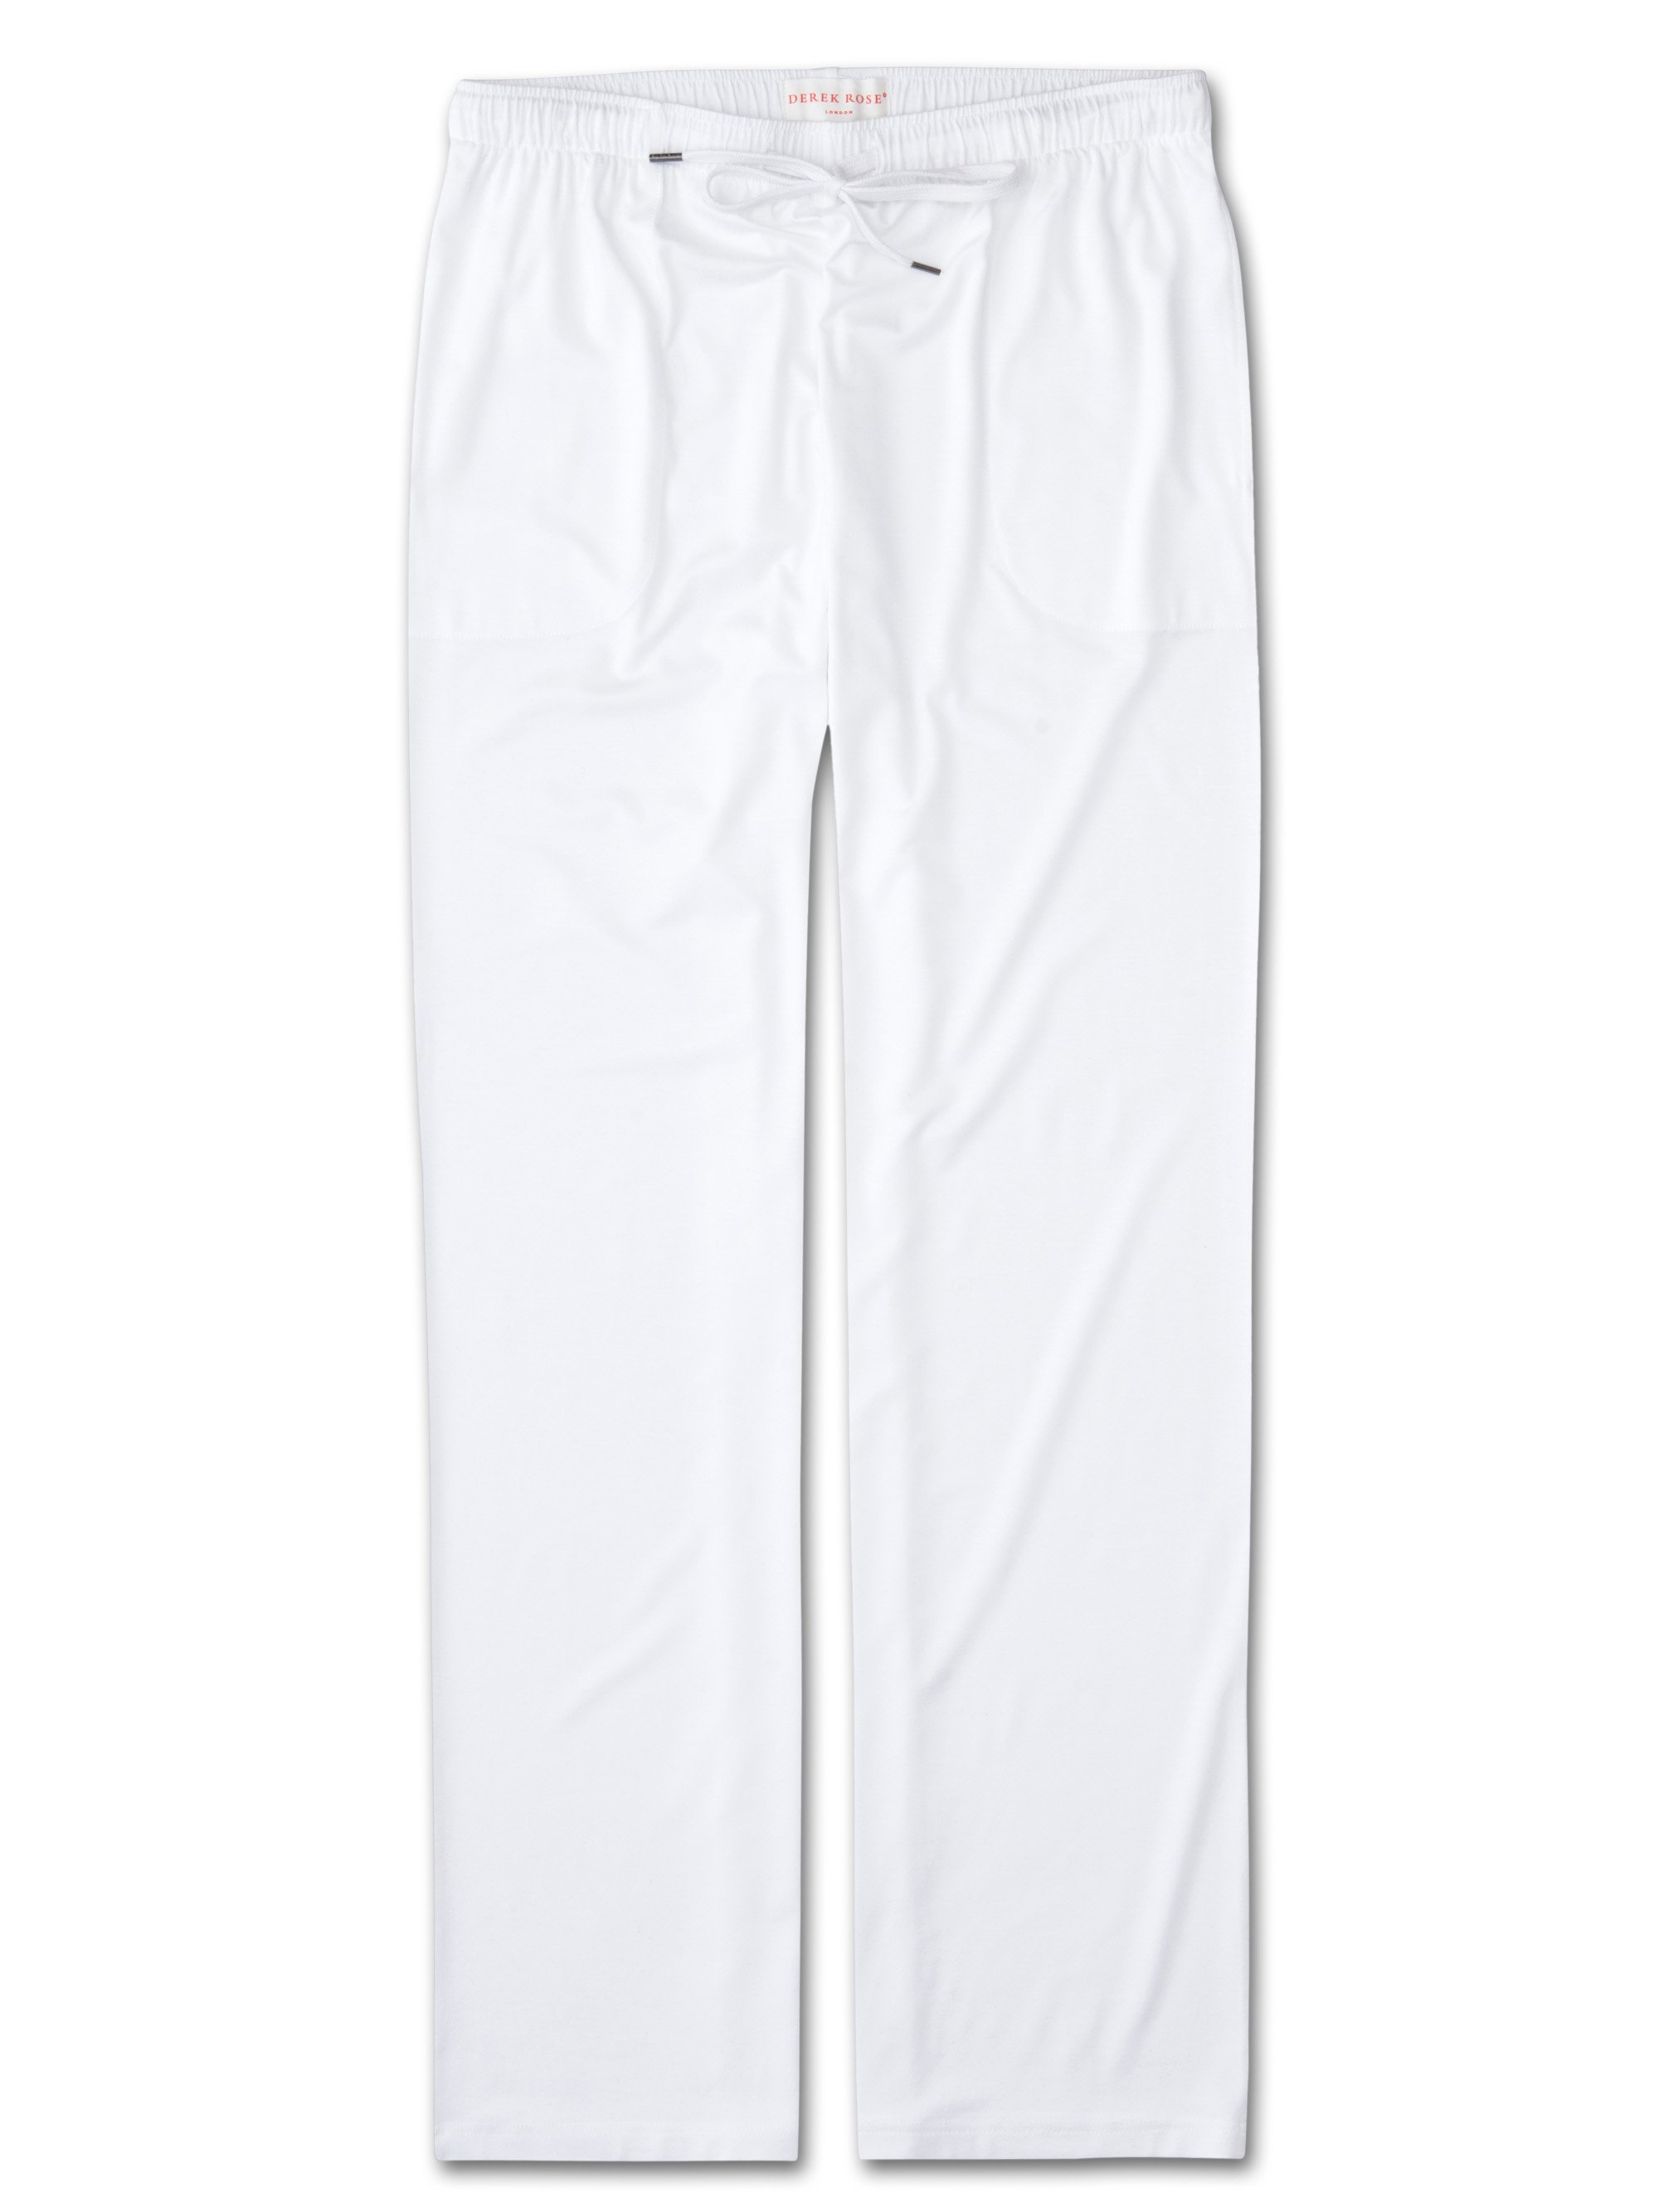 White lounge trouser for men